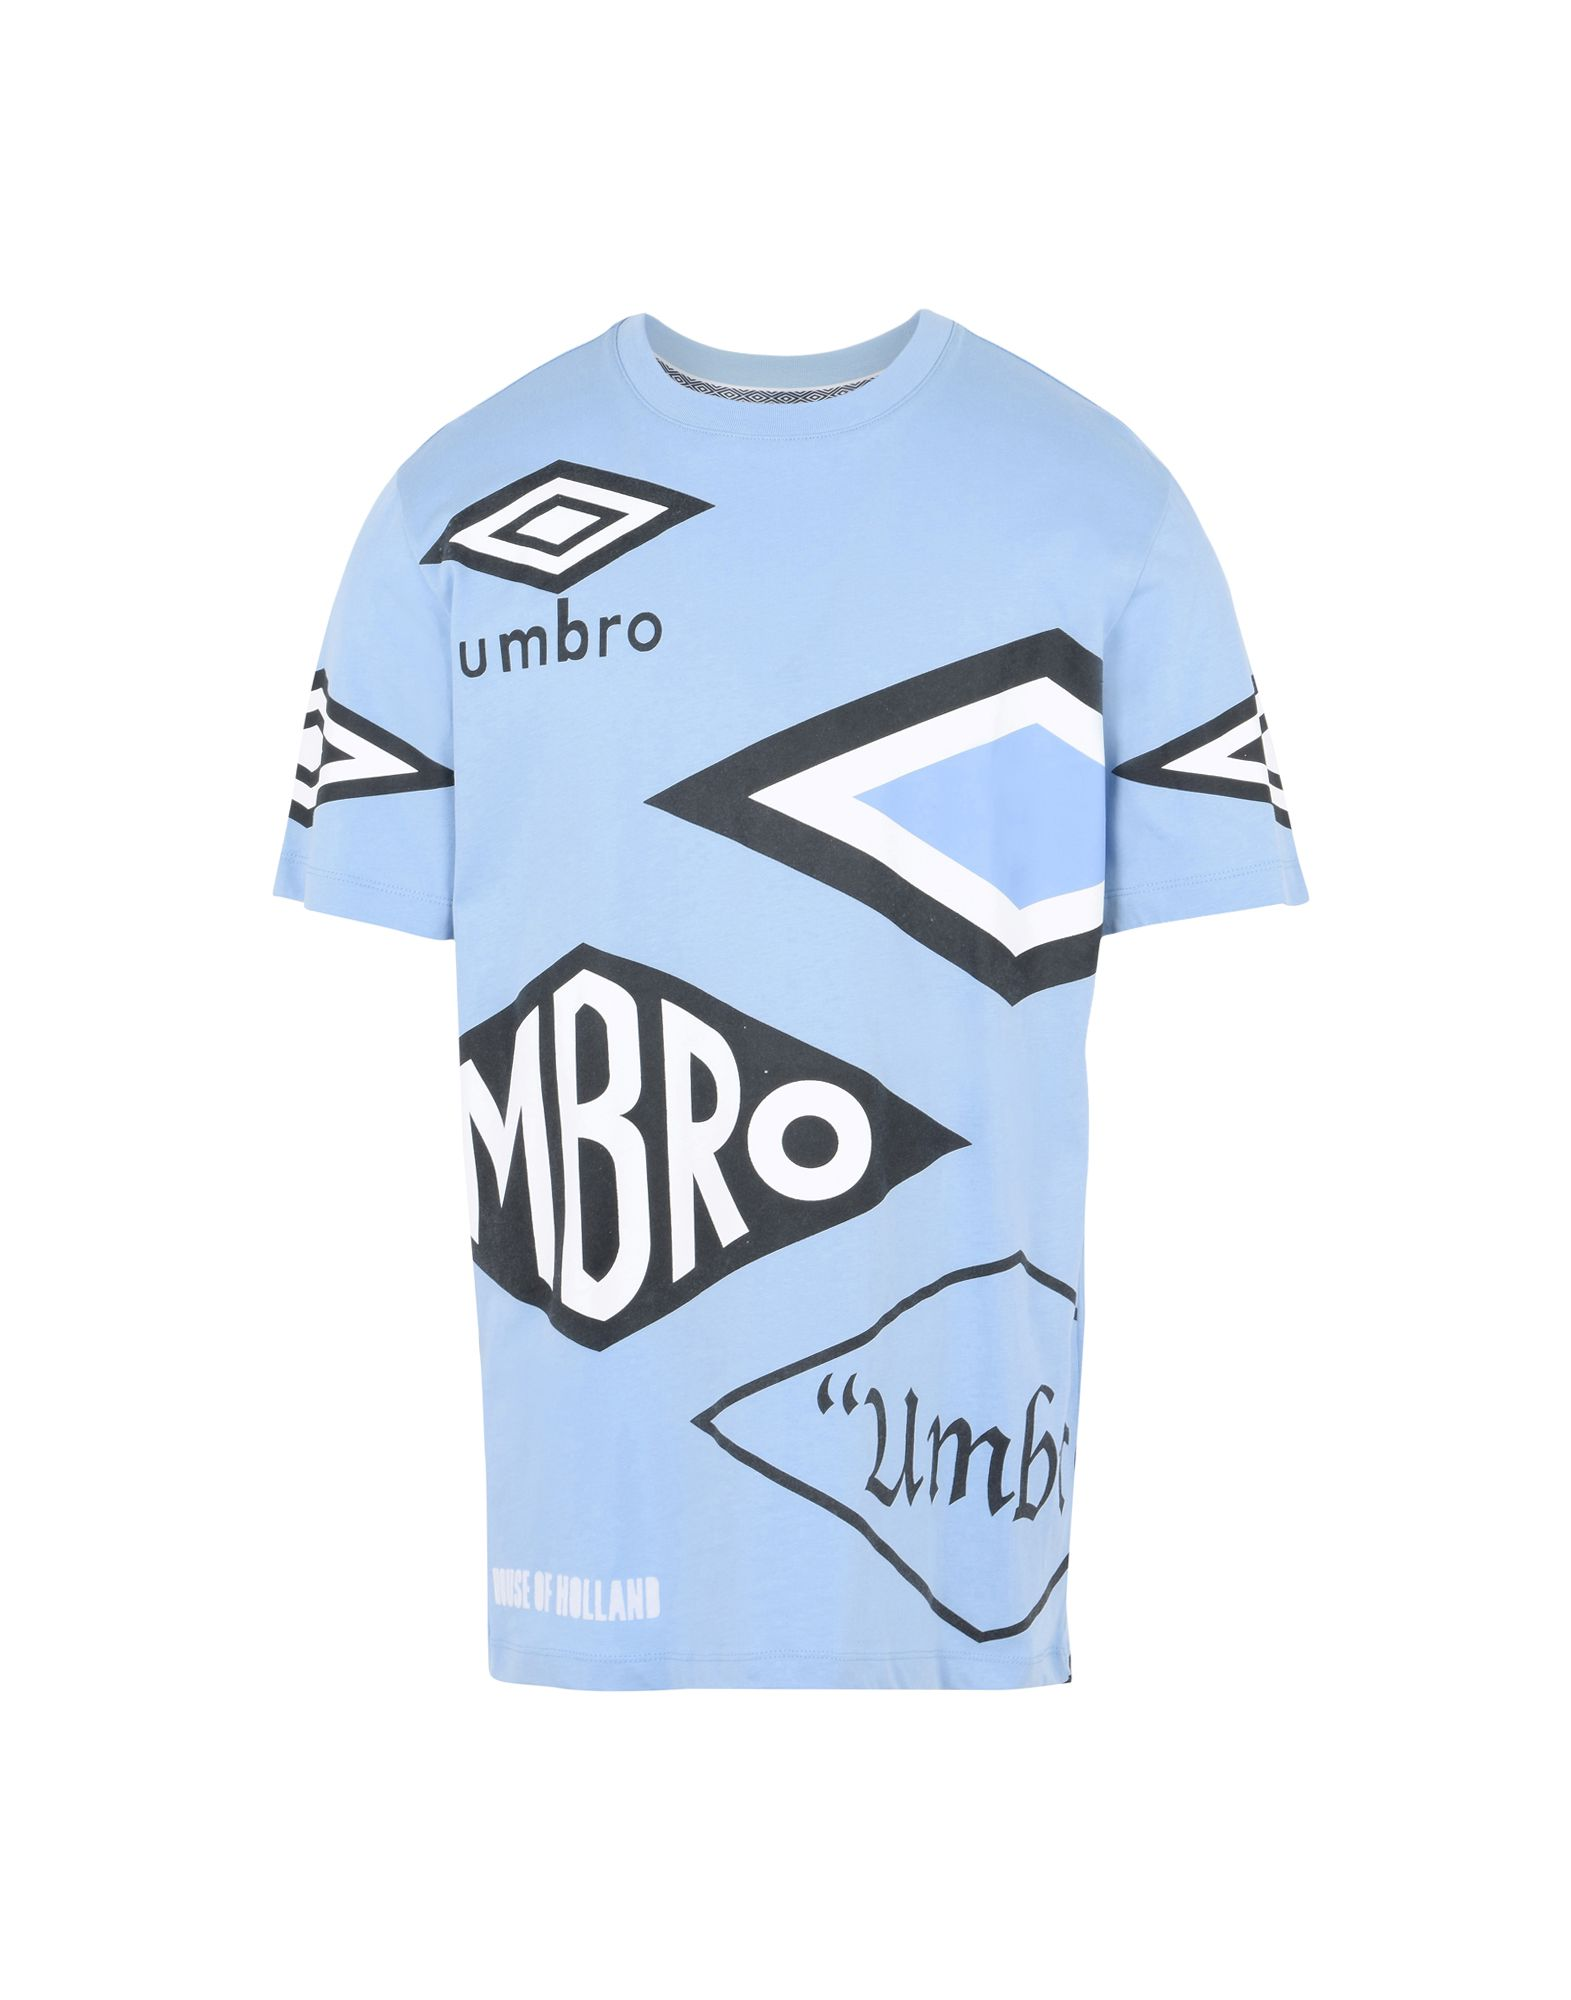 UMBRO x HOUSE OF HOLLAND Футболка umbro x house of holland толстовка